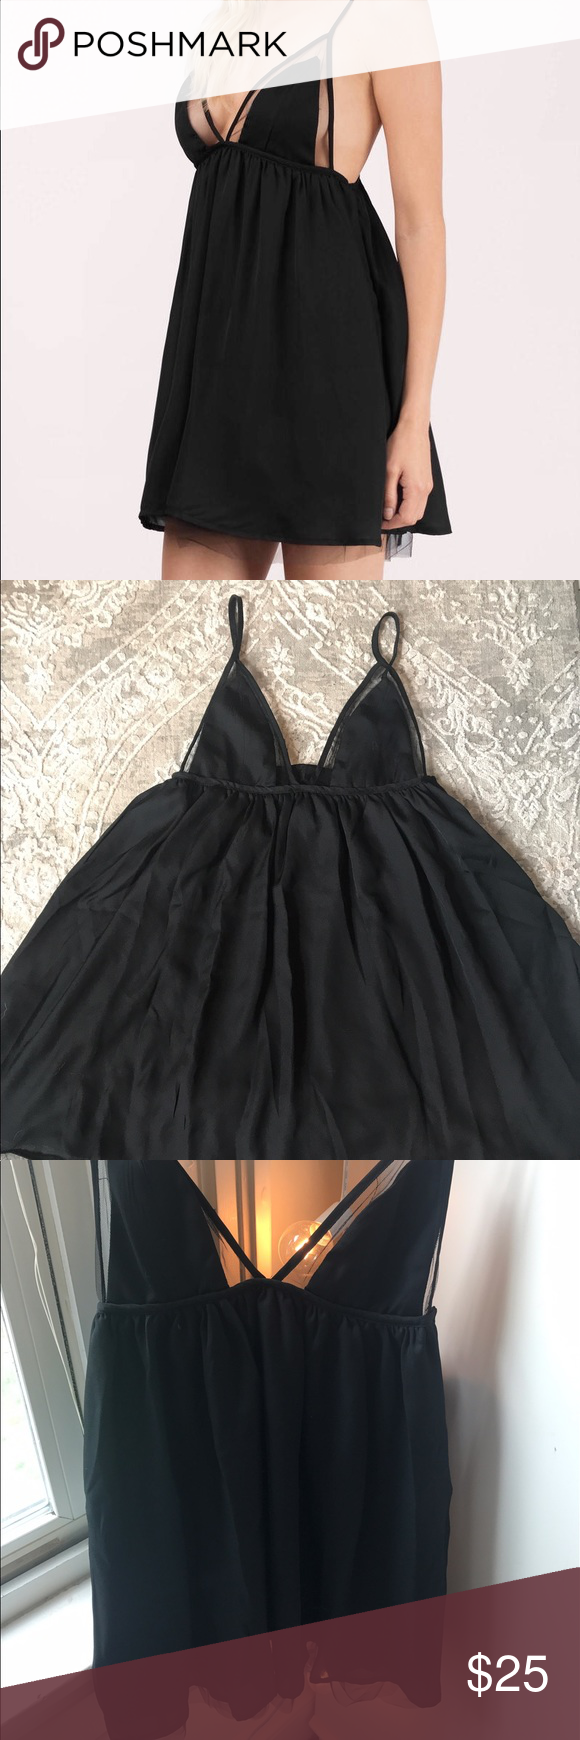 Mesh Babydoll Dress Black babydoll dress with sheer lining. Originally from Tobi, never worn + tags still attached. Size S Tobi Dresses Mini